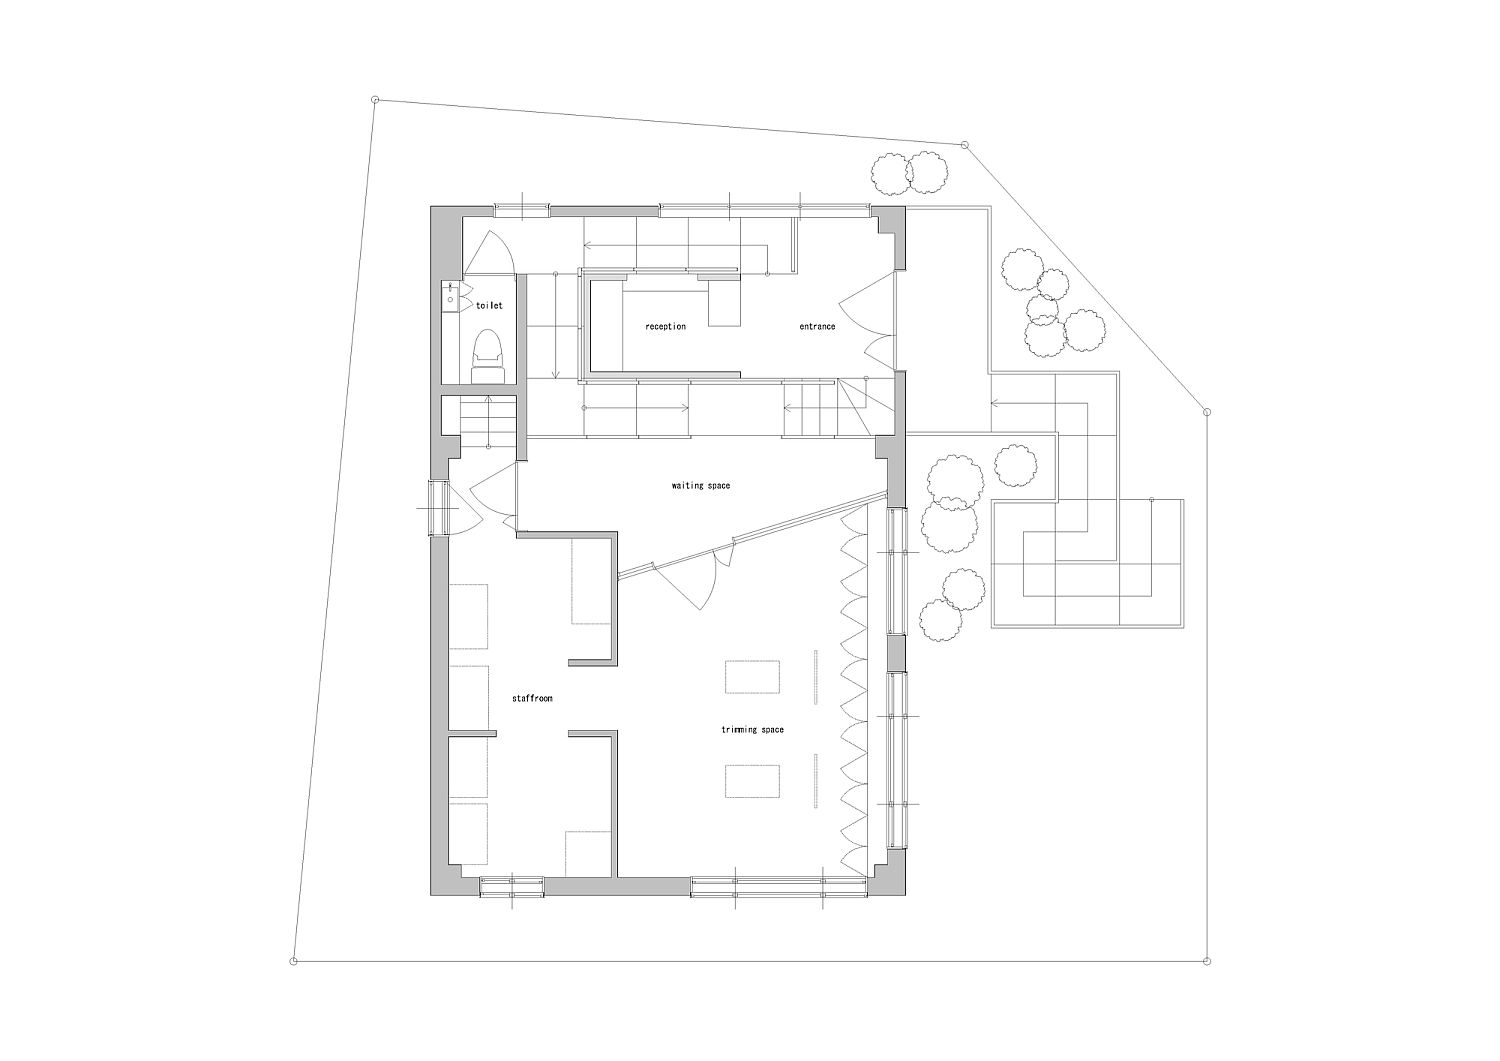 Floor plan of Dog salon with simple, uncomplicated design